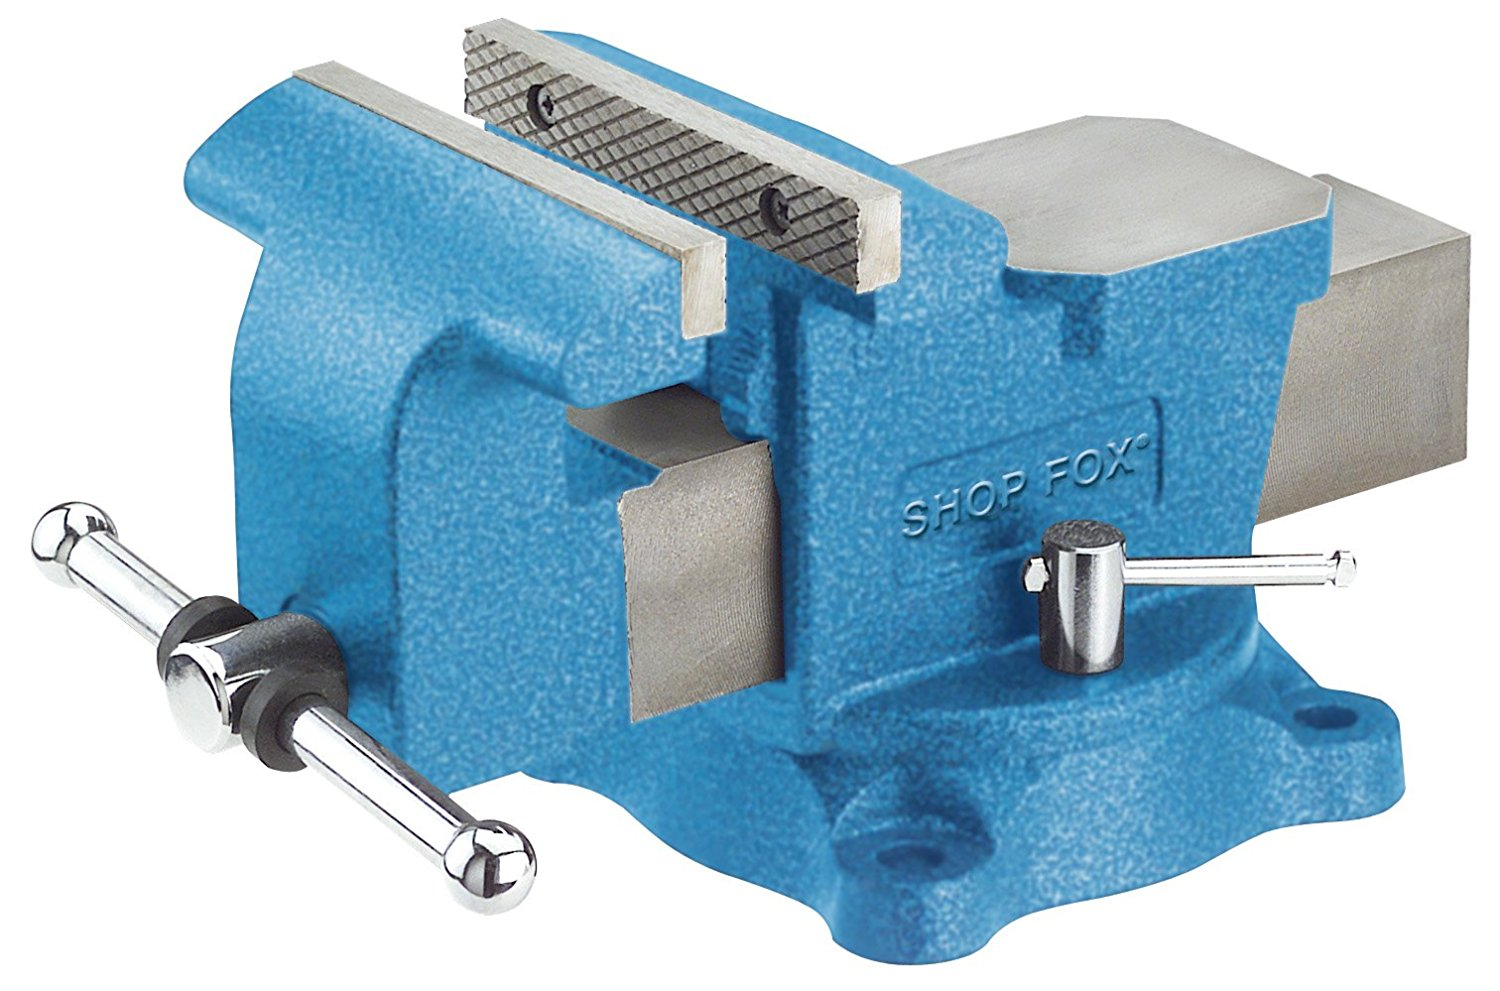 Shop FoxBench Bench Vise with Swivel Base